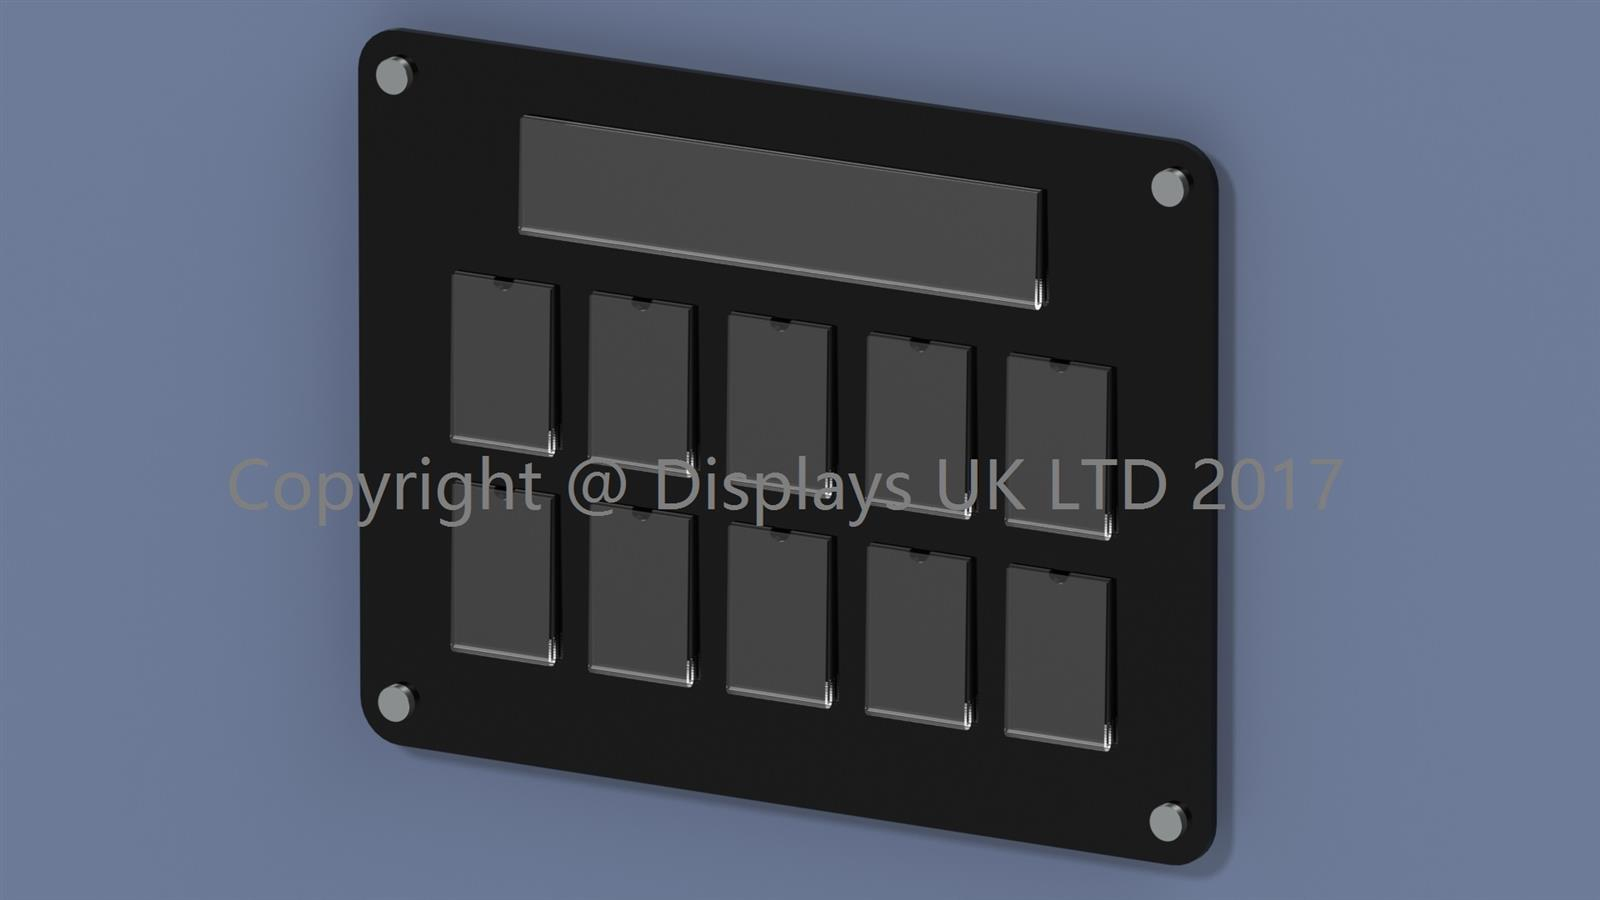 10 pocket staff photo board manufactured from Perspex acrylic